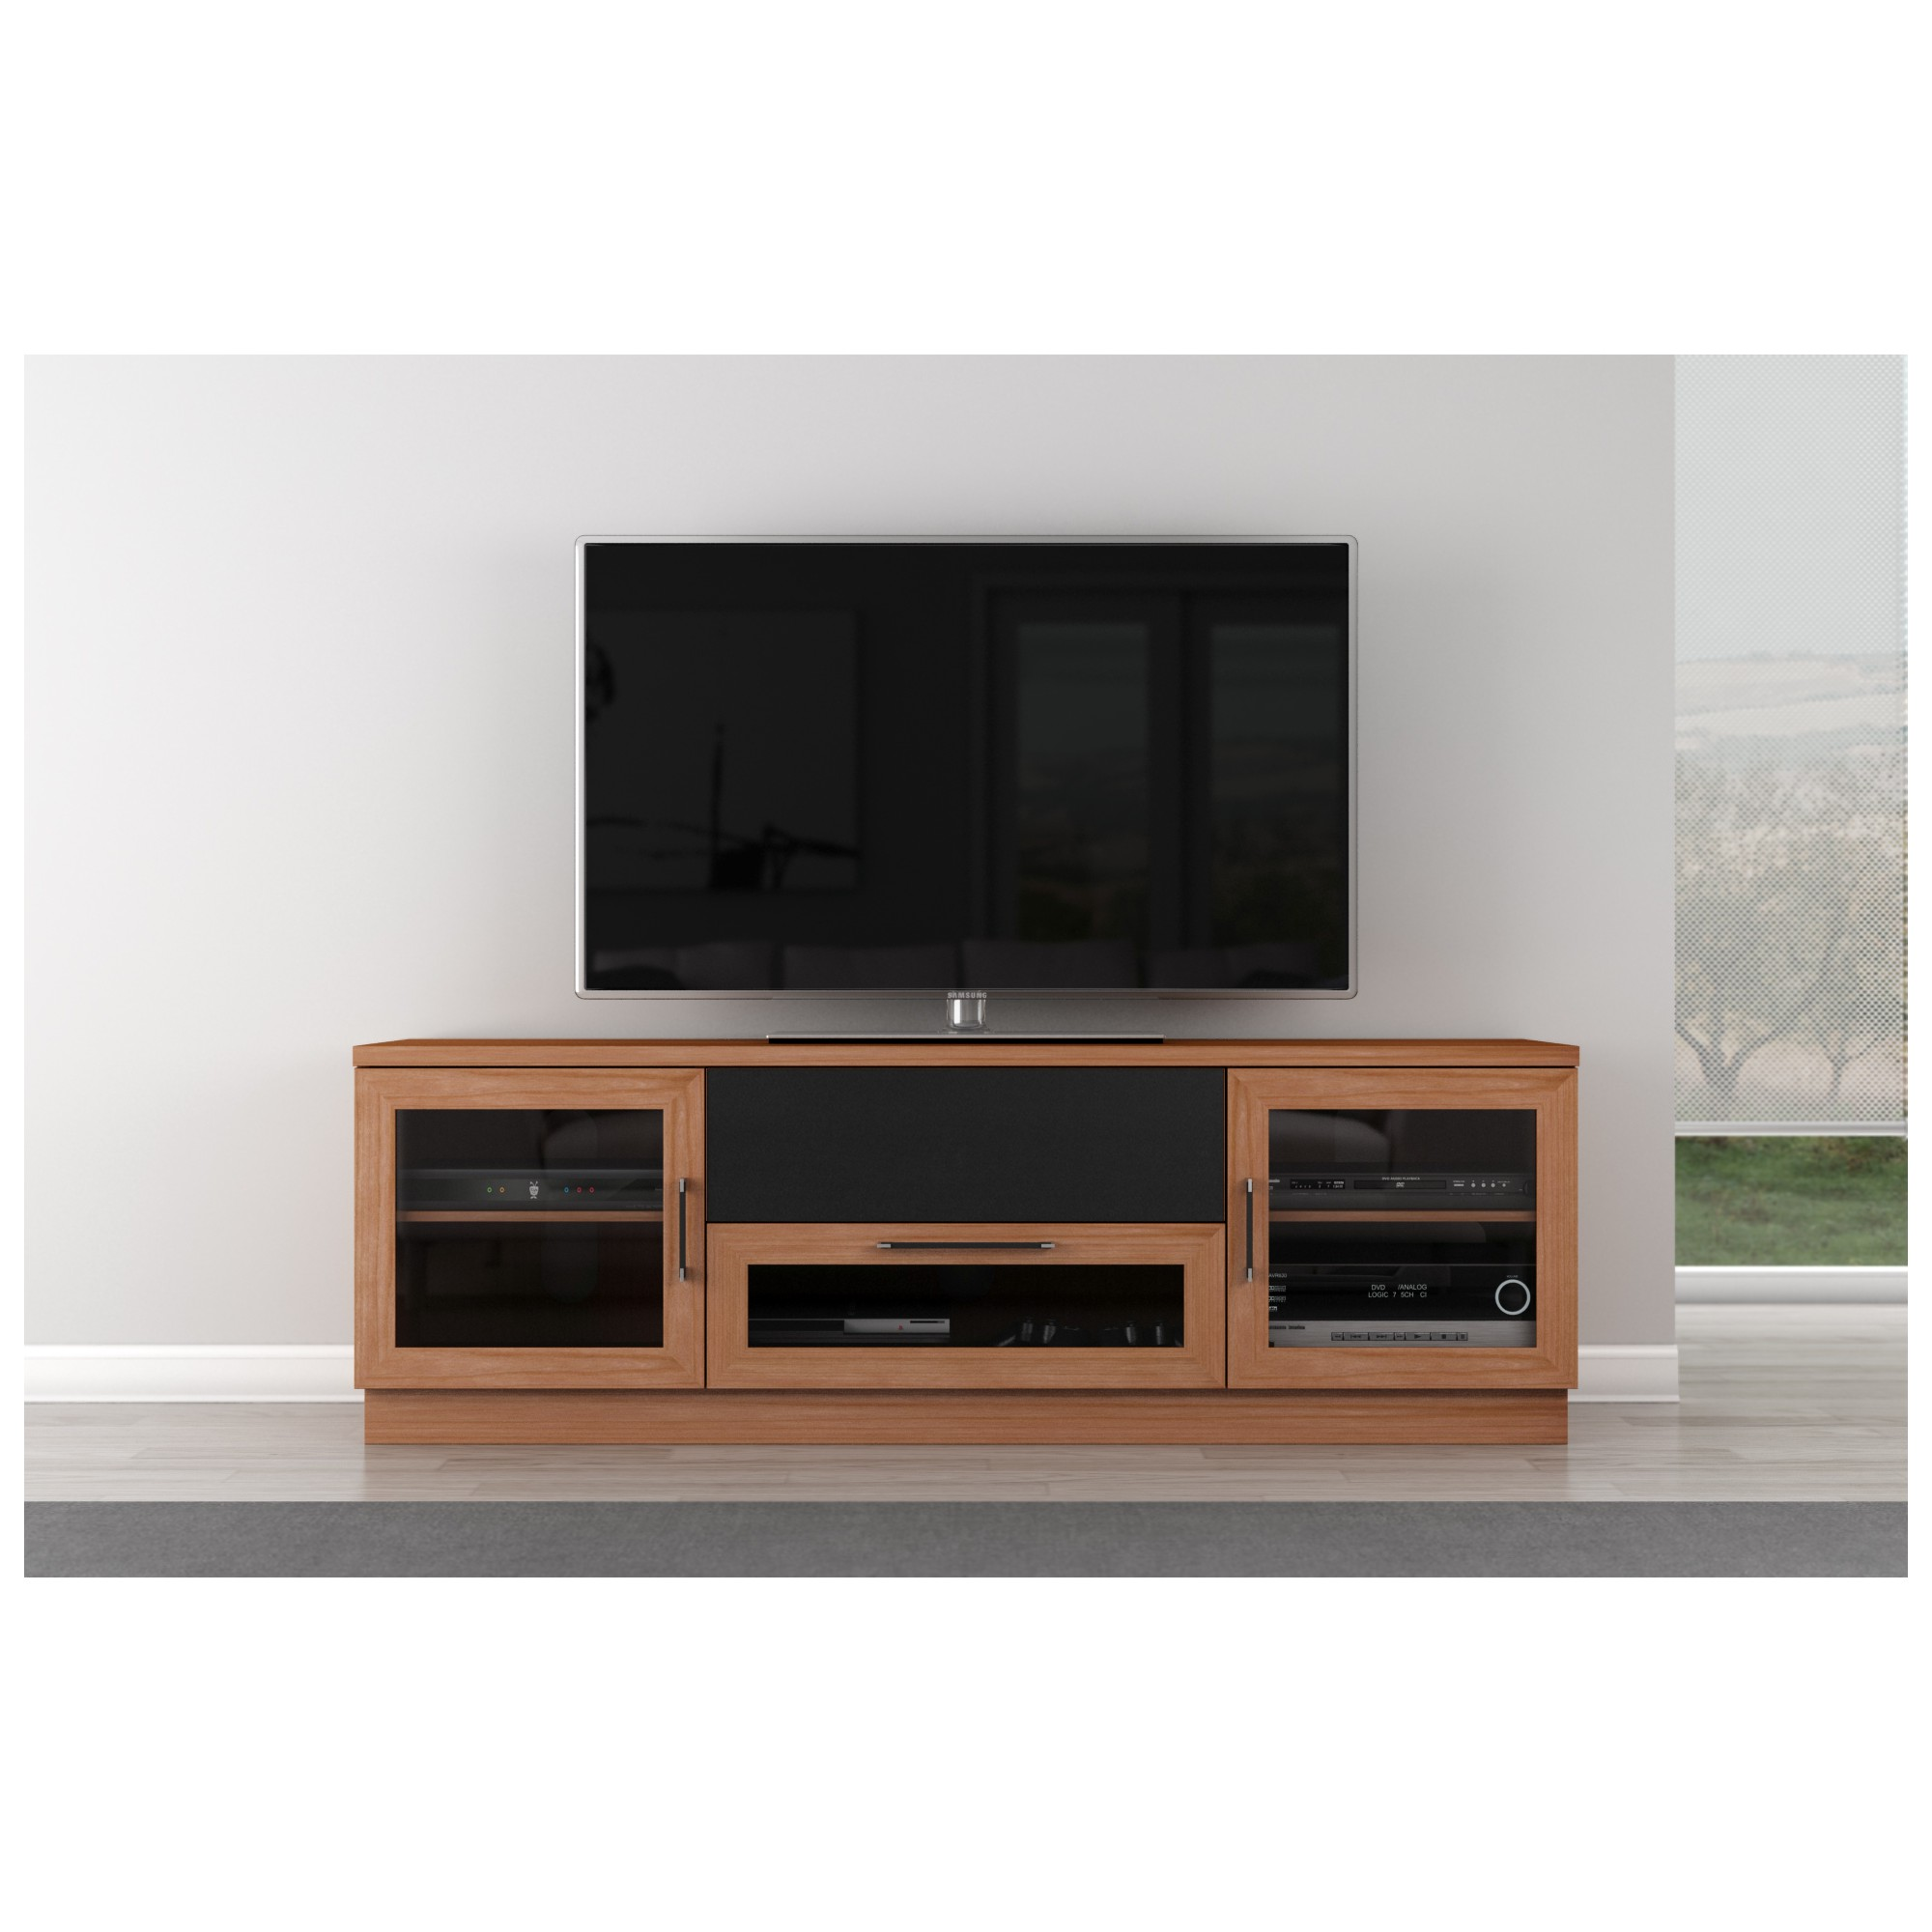 Furnitech Ft72cc Nc 70 Tv Stand Contemporary Media Cabinet W